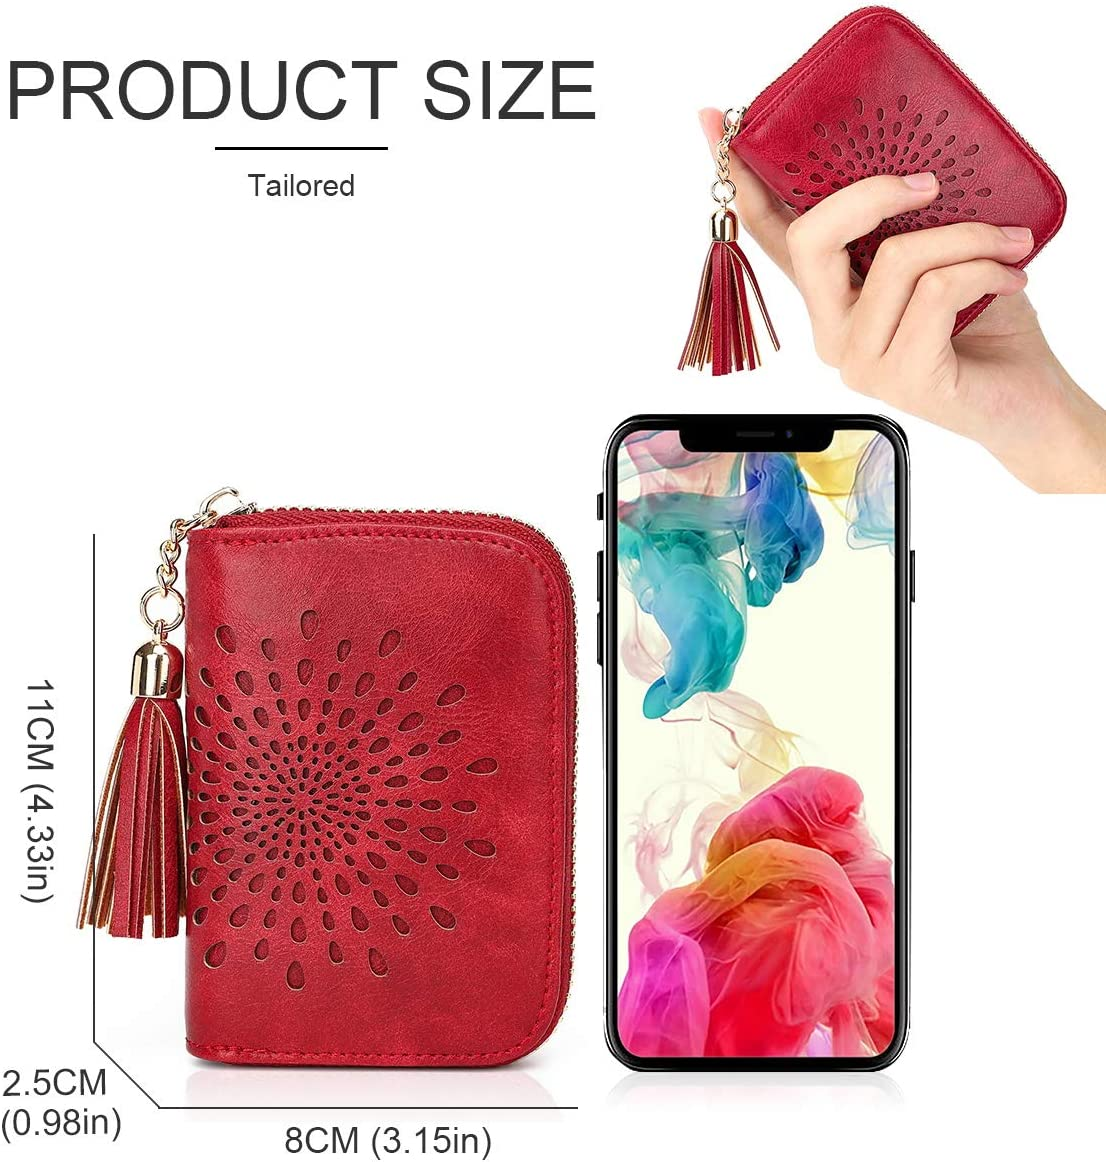 Credit Card Holder for Women RFID Blocking Girls Small Wallet Accordion Sunflower Hollow with Tassels 1927COFFEE